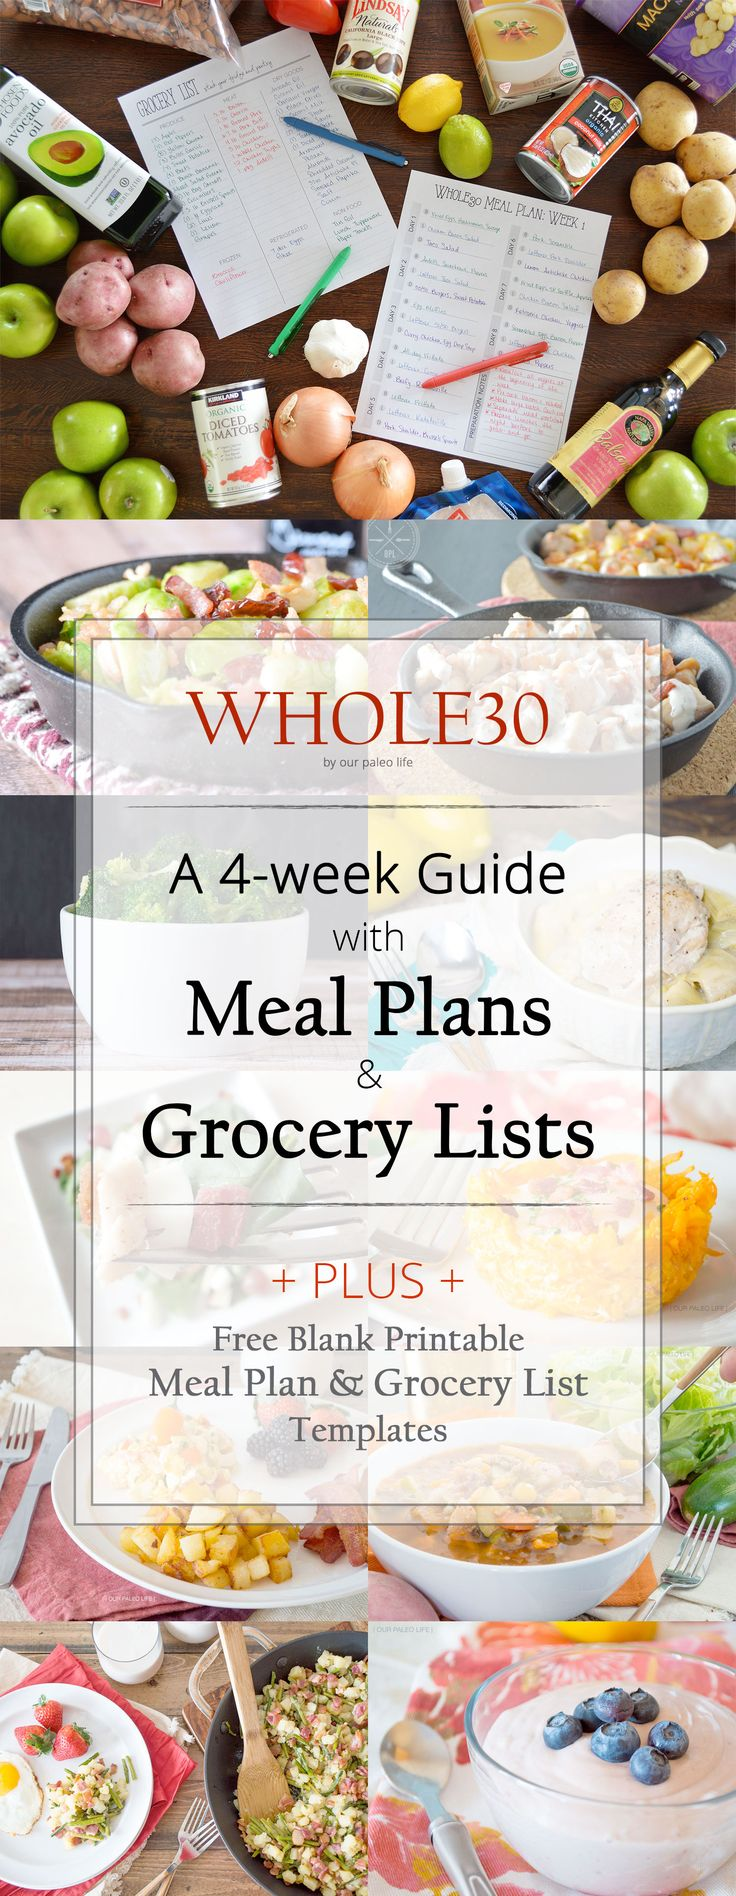 Download the Printable Whole30 Meal Plan & Grocery List | 4 complete weeks of meal plans and grocery lists to make your life easier  #whole30 #paleo